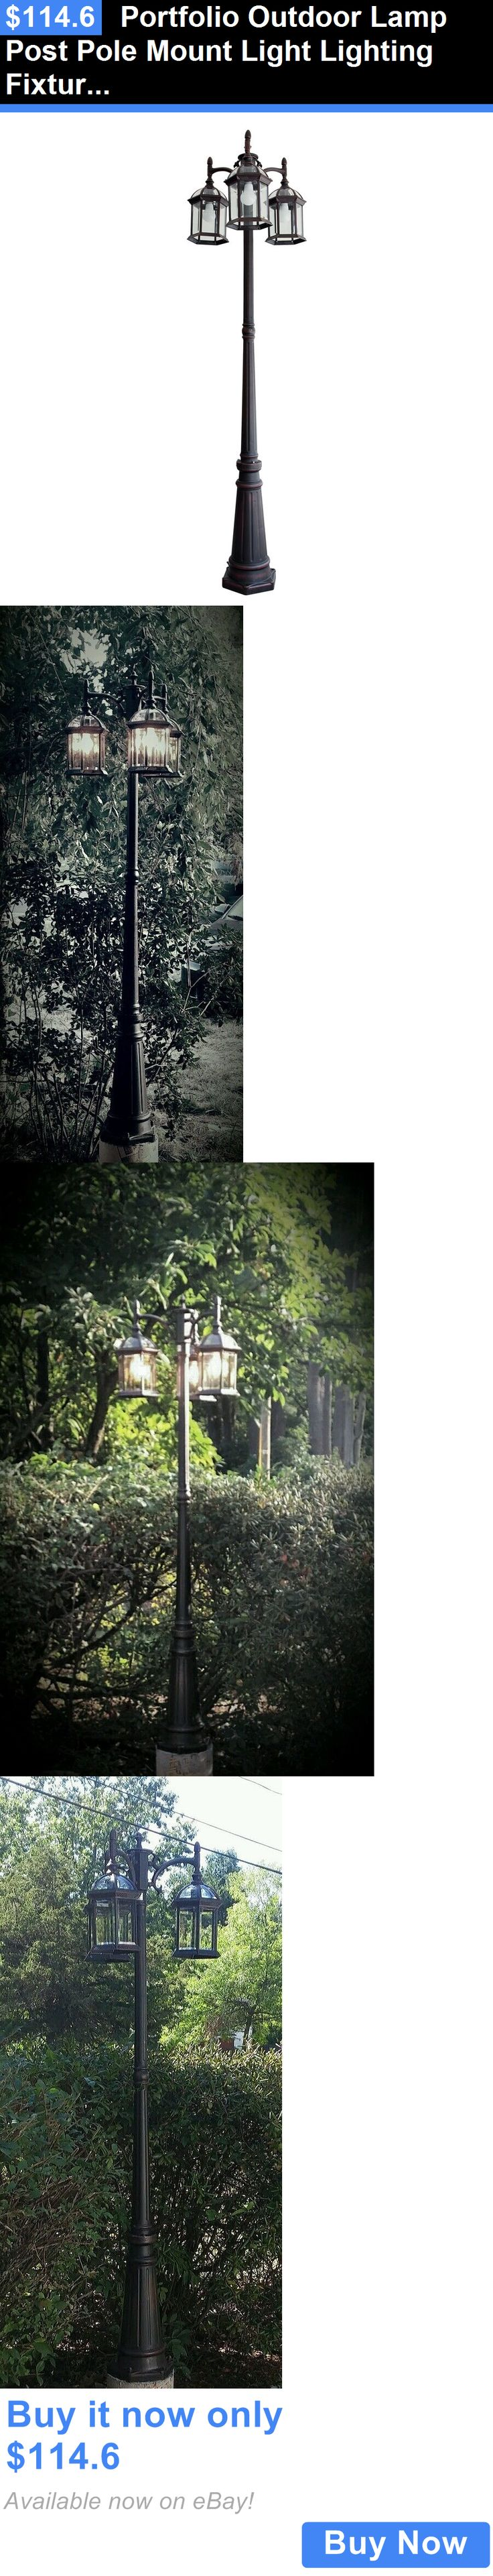 1000 Ideas About Portfolio Outdoor Lighting On Pinterest Lawn